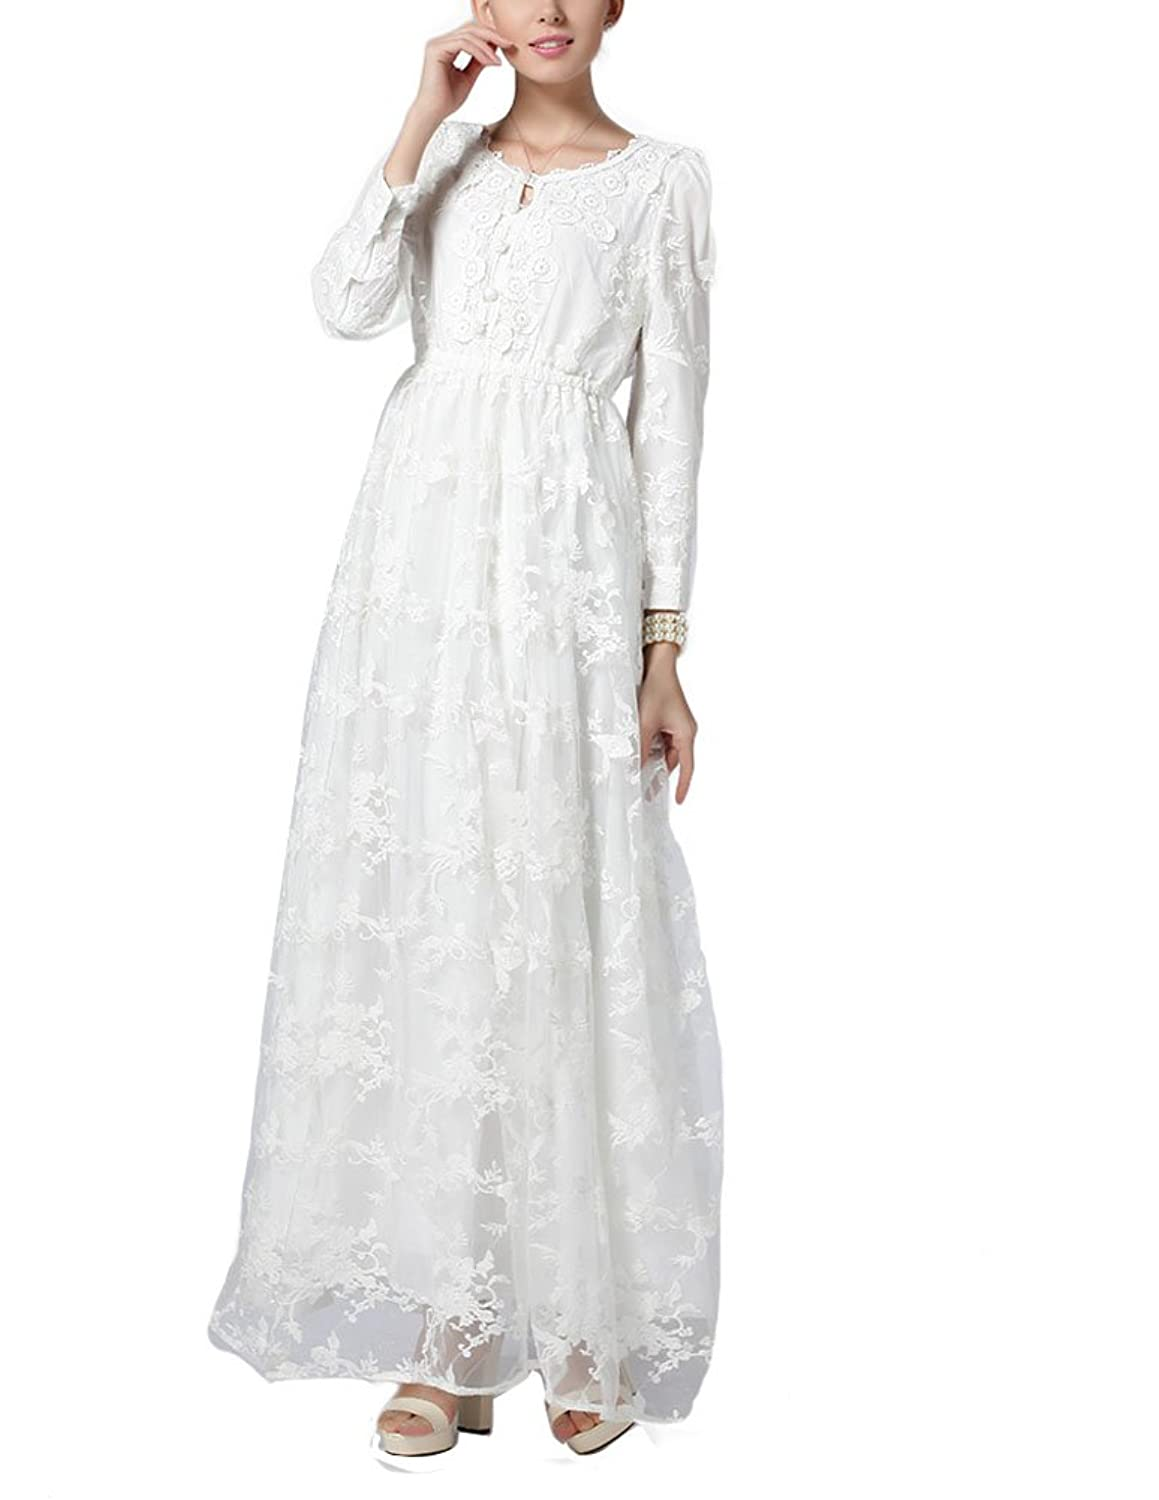 Vintage Inspired Halloween Costumes Three Layers Crochet Embroidery Craft Lace Wedding Dress LYQ0156 $49.99 AT vintagedancer.com